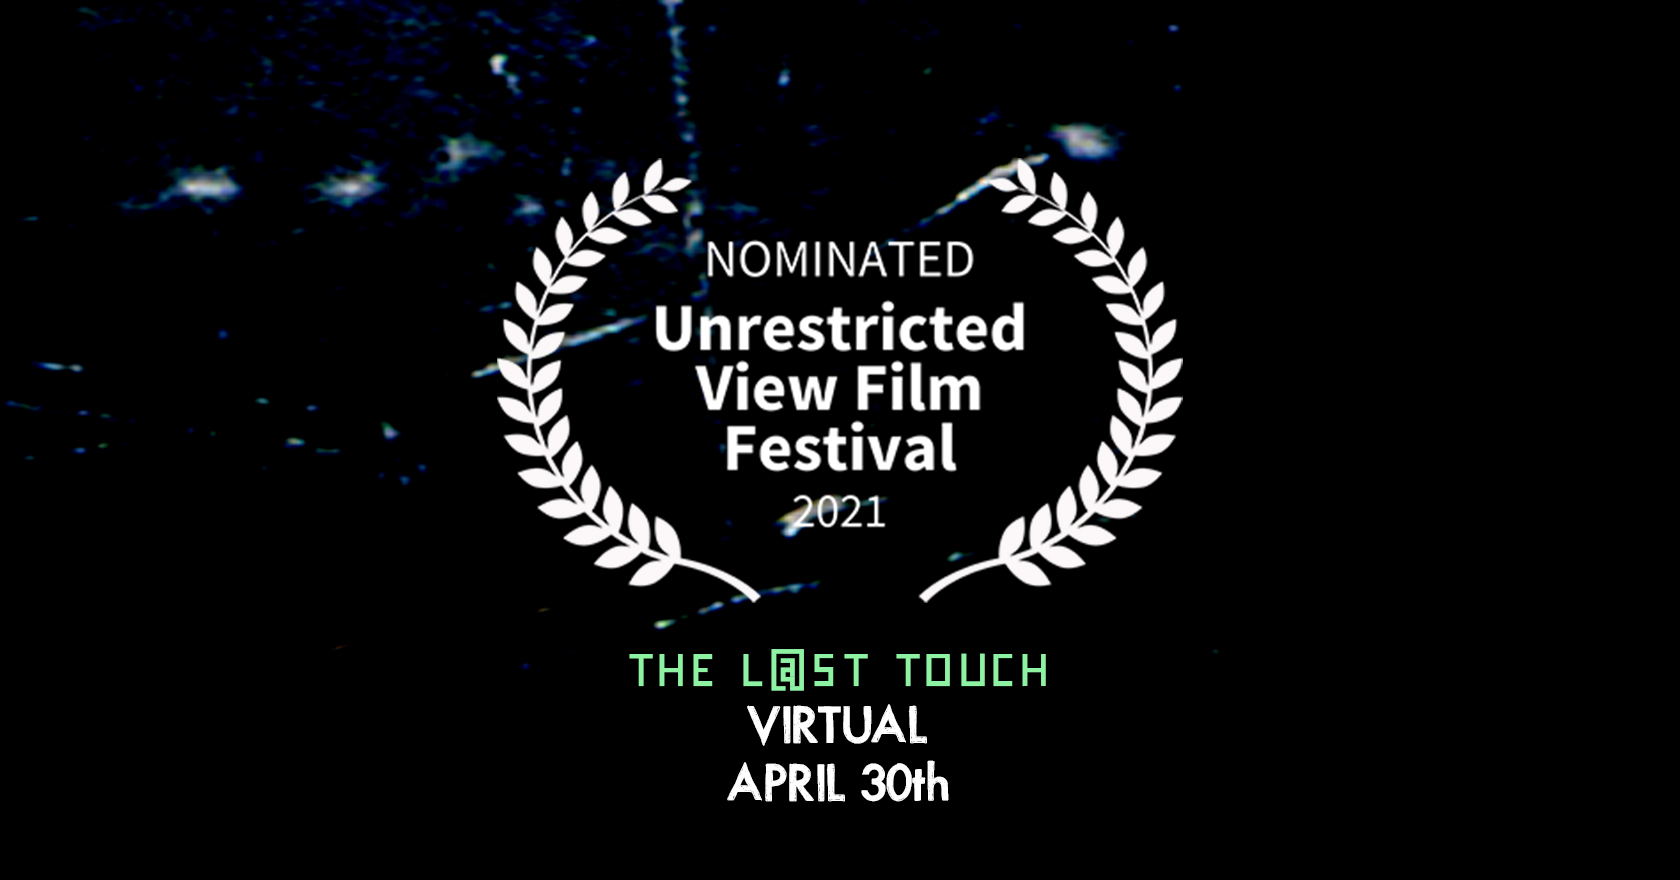 Two Nominations for The Last Touch Nominated at UVFF (Unrestricted View Film Festival)!